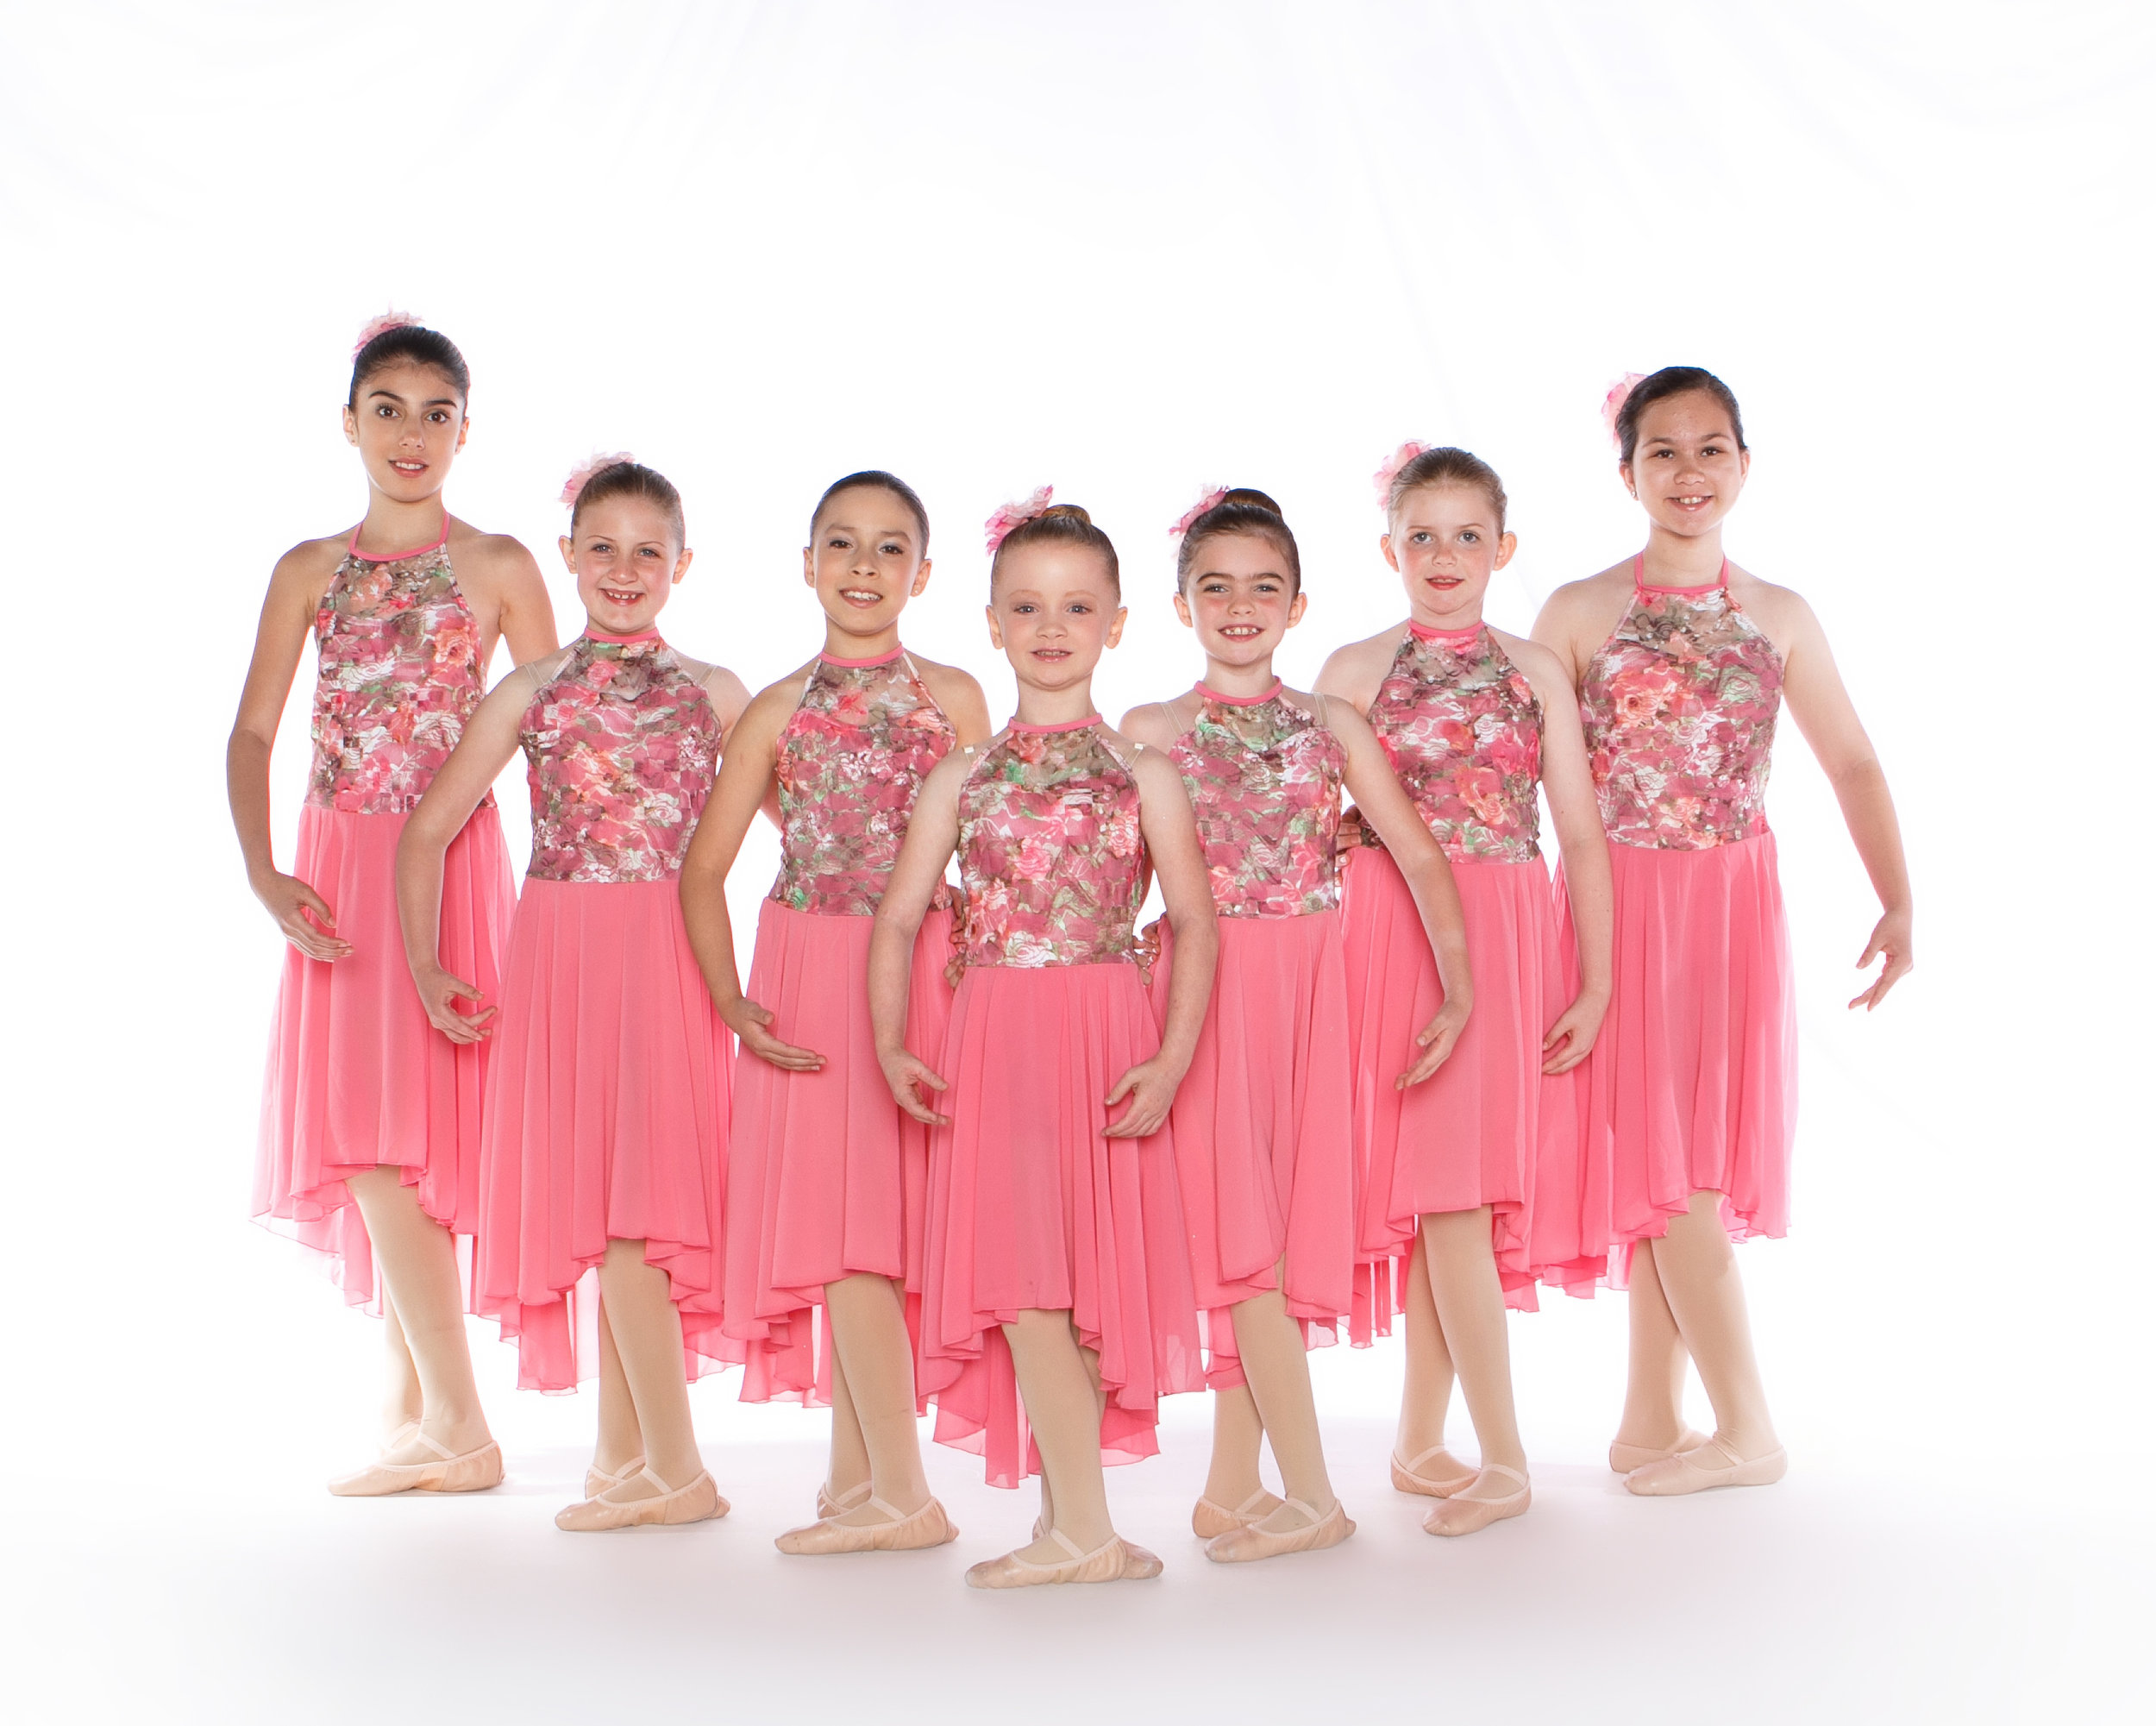 Dance classesfor all ages - Serving the families of Fort Bend County for 37 years!